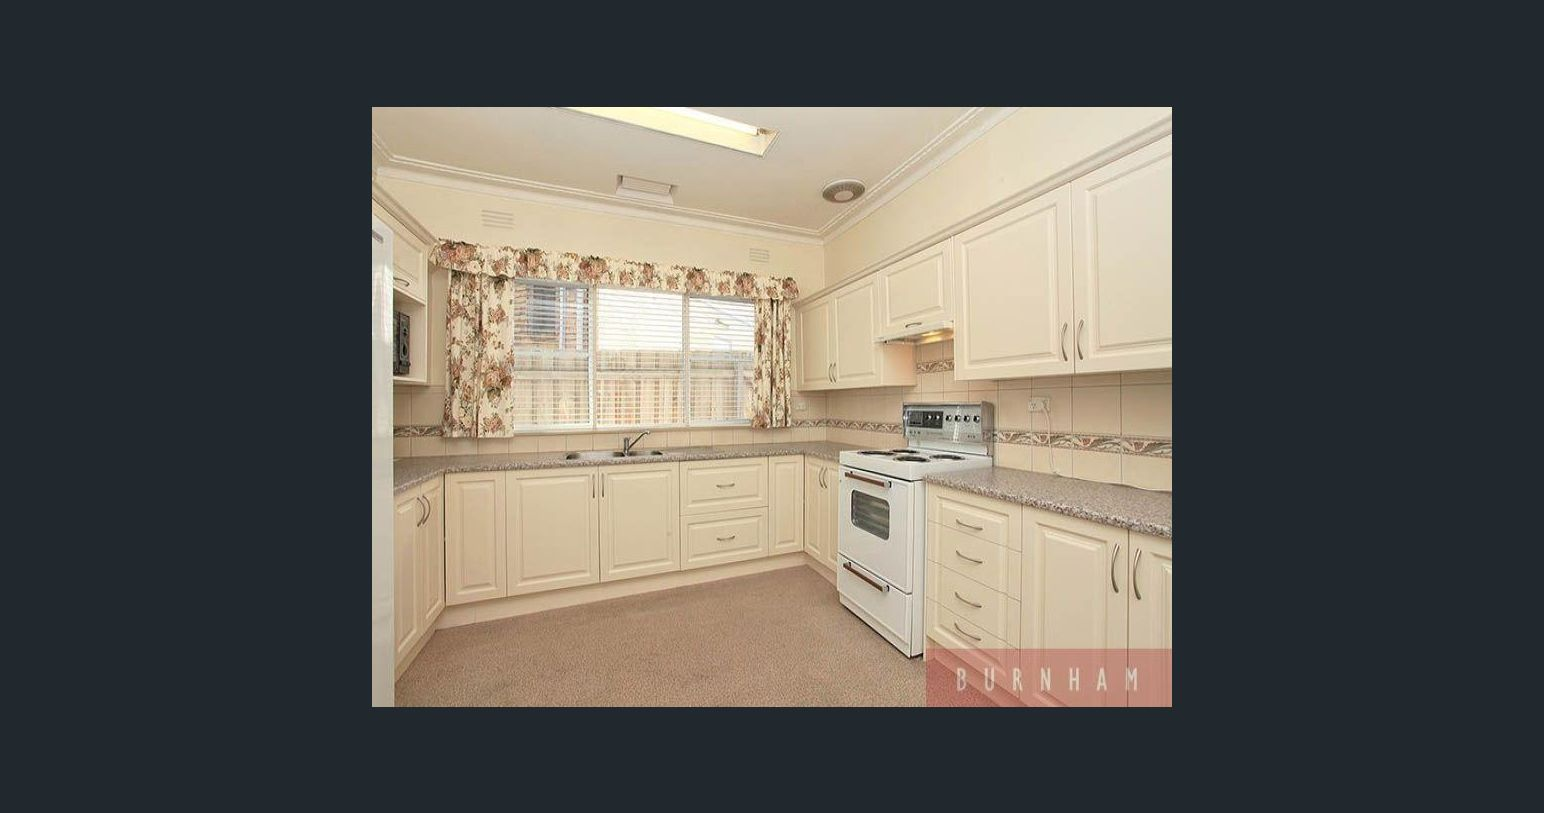 2a Buxton St, West Footscray VIC 3012, Image 2